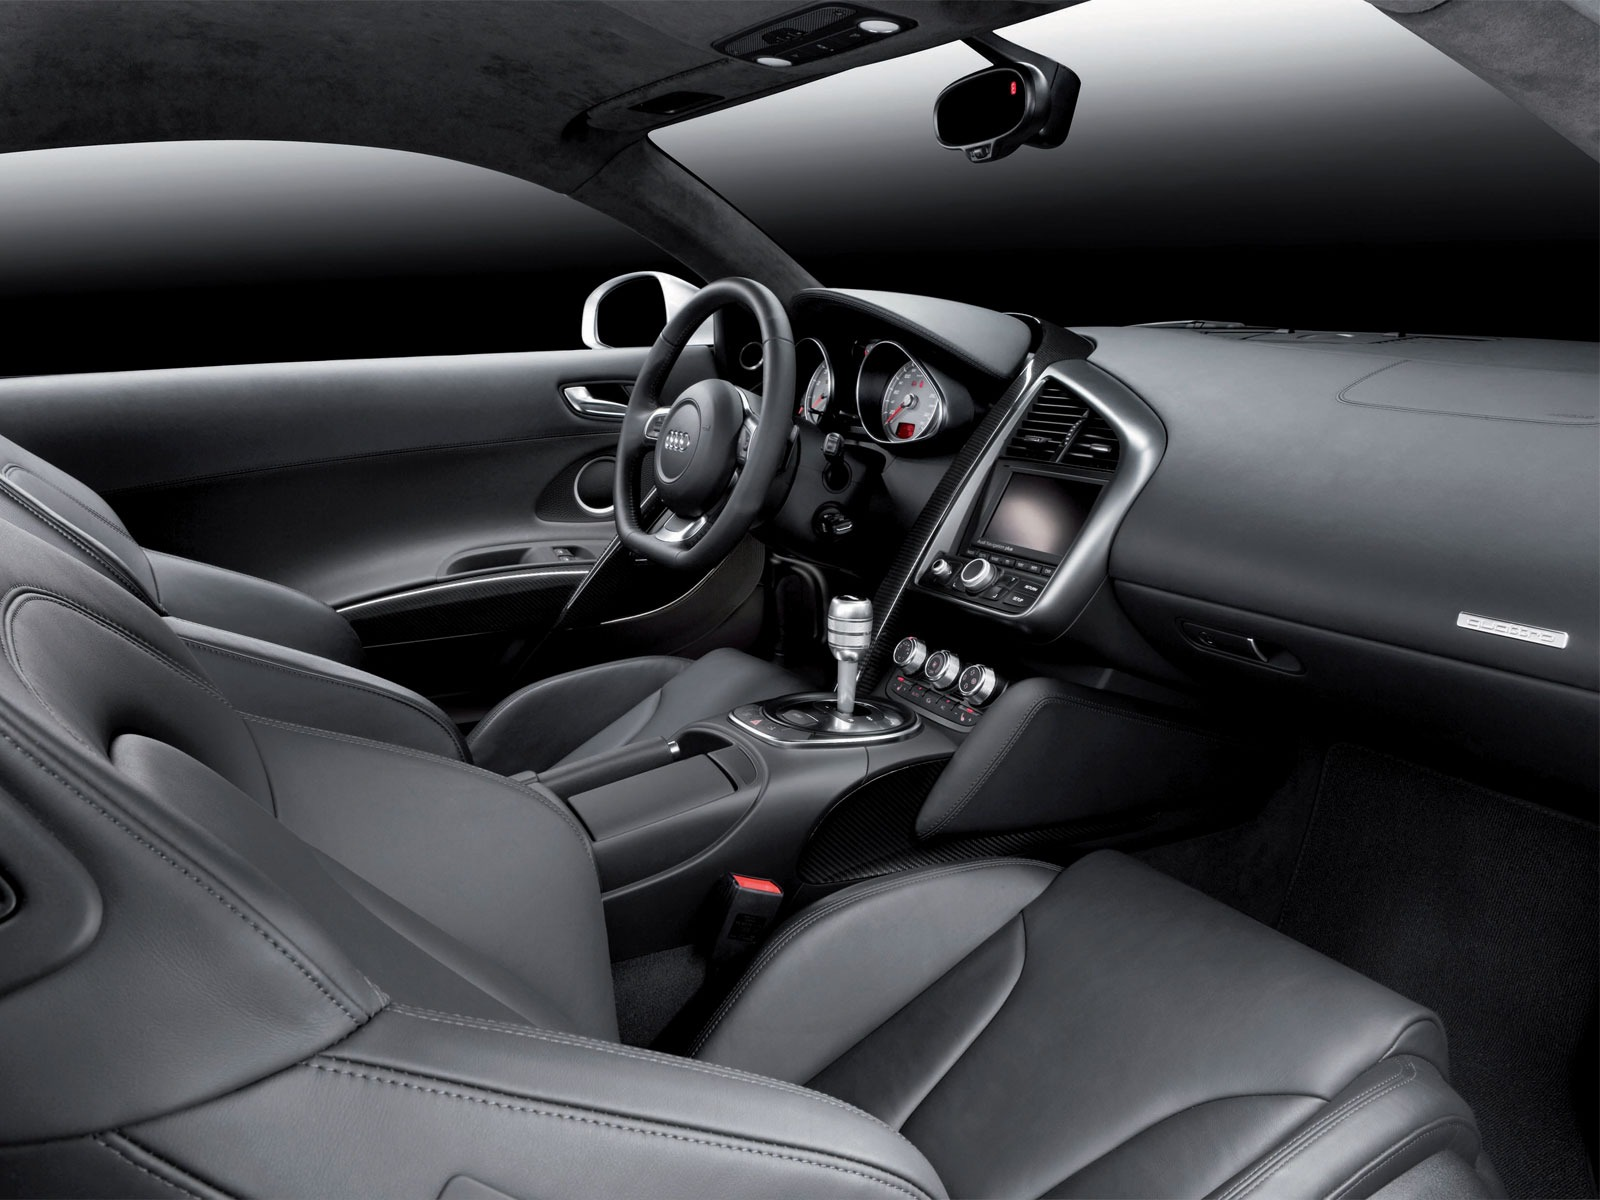 Audi R8 Interior Wallpaper Audi Cars Wallpapers In Jpg Format For